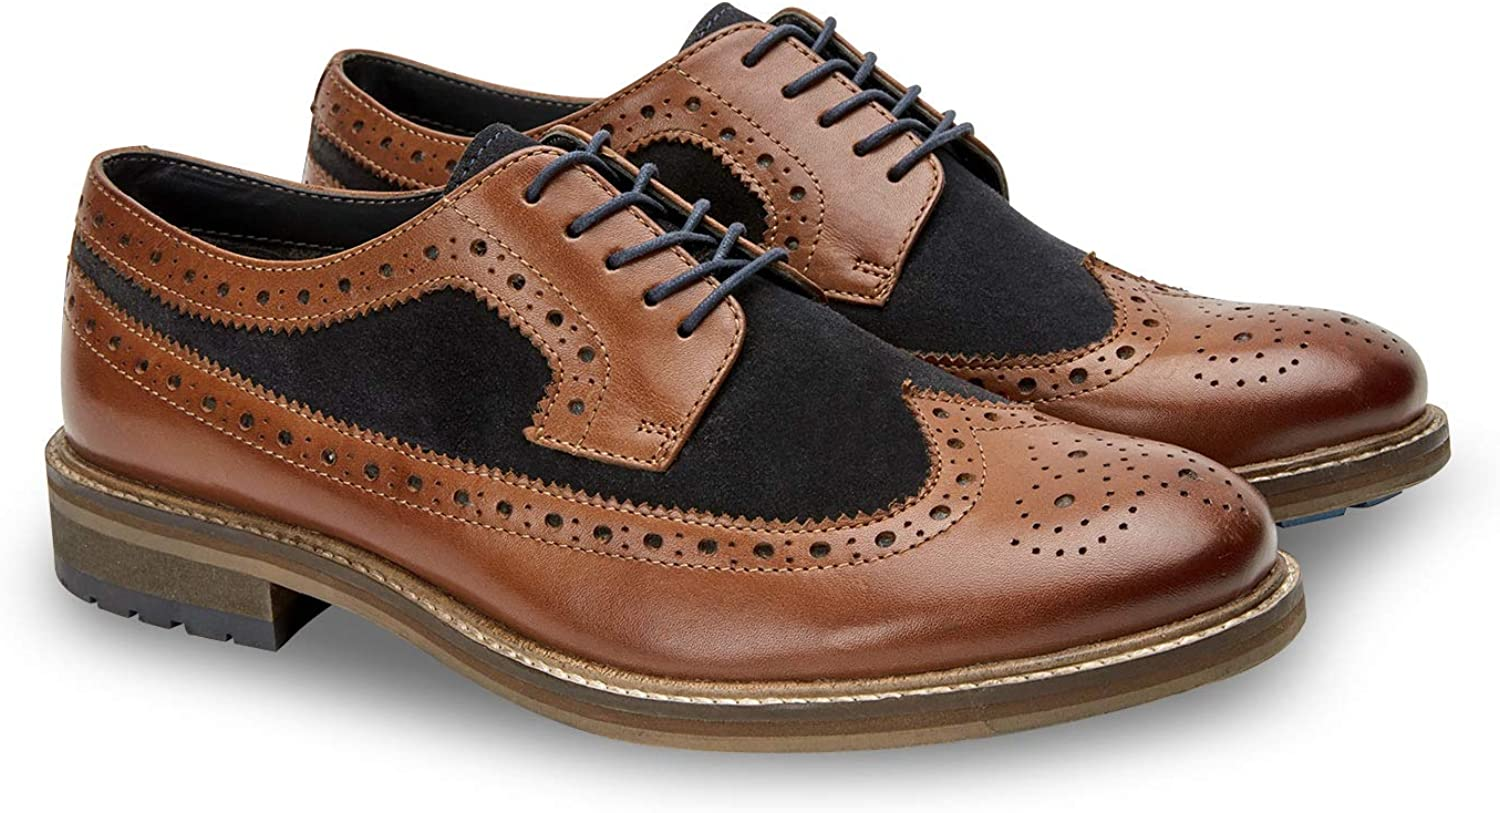 Joe Browns Mens Leather and Suede Lace Up Brogues Brown 11